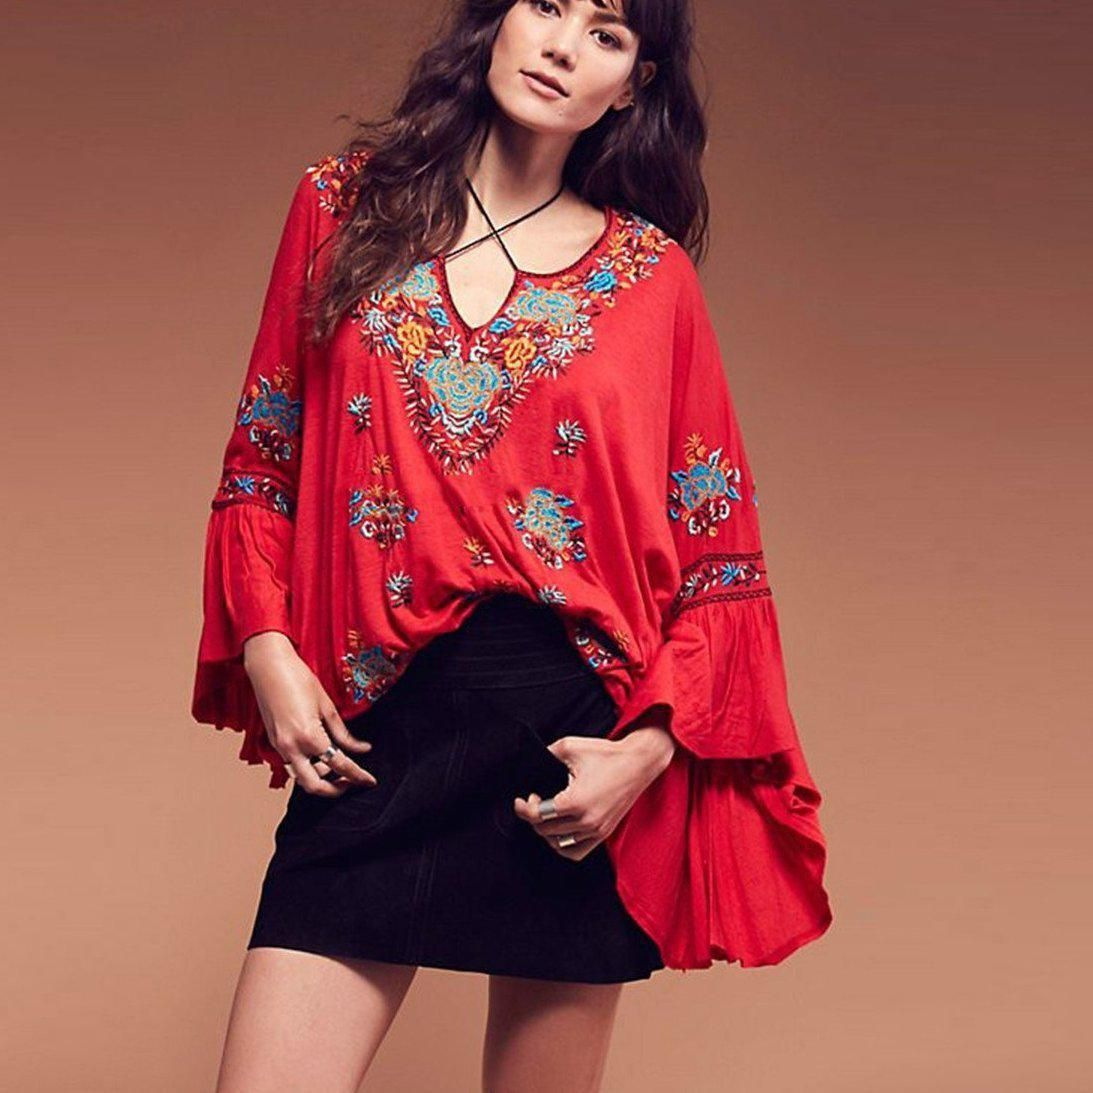 ea3928ec8f0a0 Siren Song Top Women Vintage Embroidery Floral Ruffle Cuffs V-Neck Plus  Size Loose Shirt Tops Boho